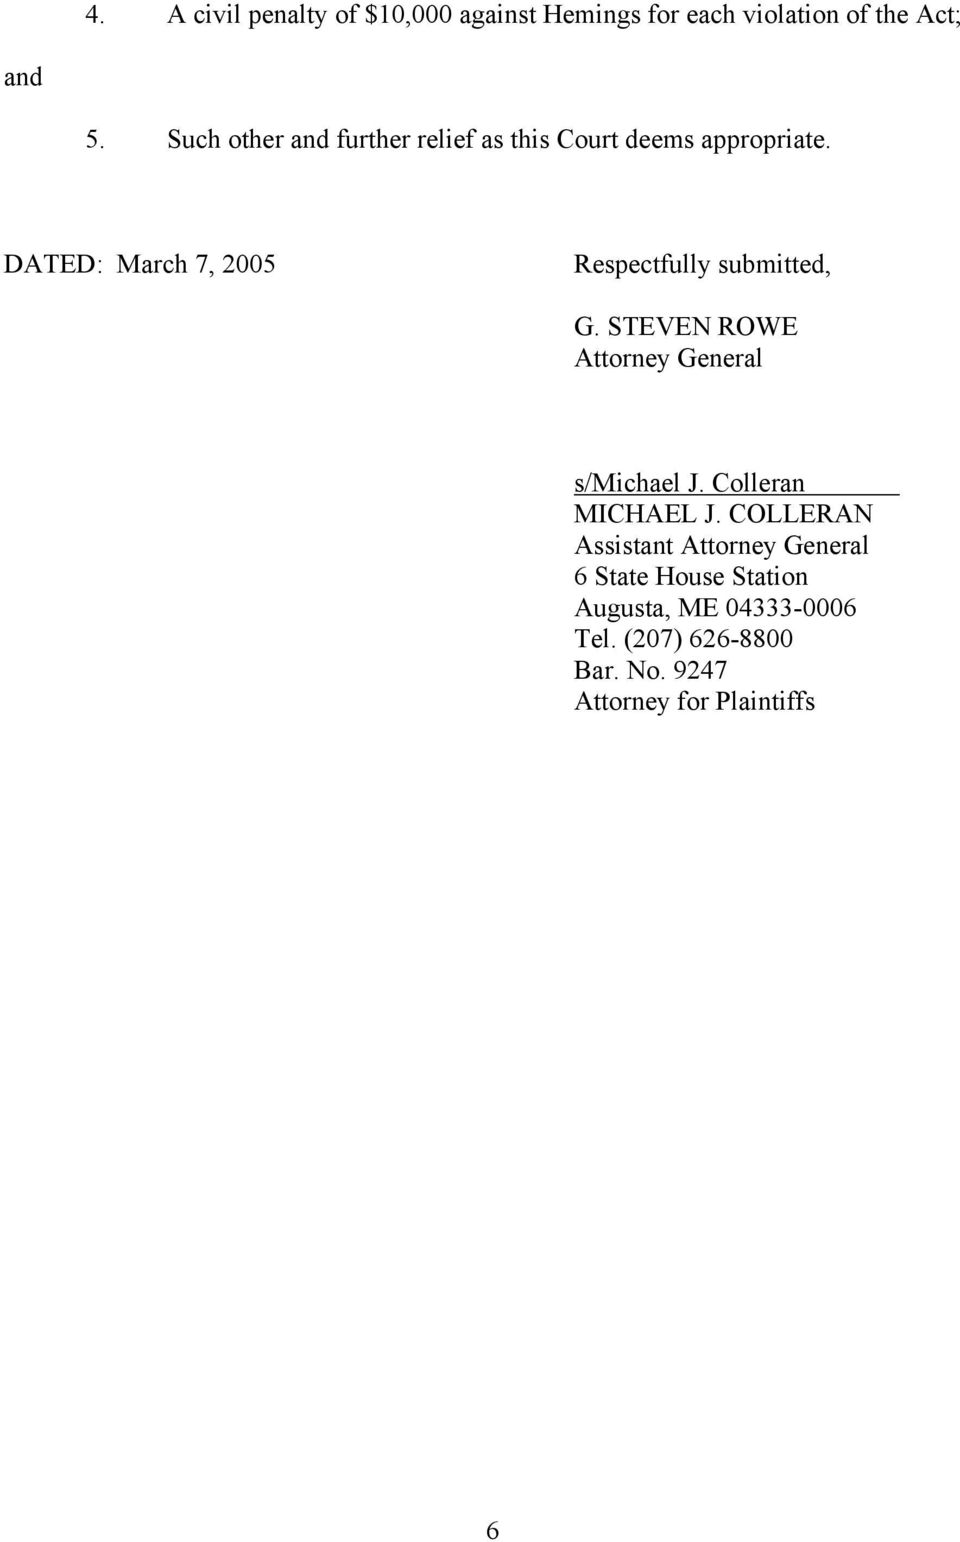 DATED: March 7, 2005 Respectfully submitted, G. STEVEN ROWE Attorney General s/michael J.